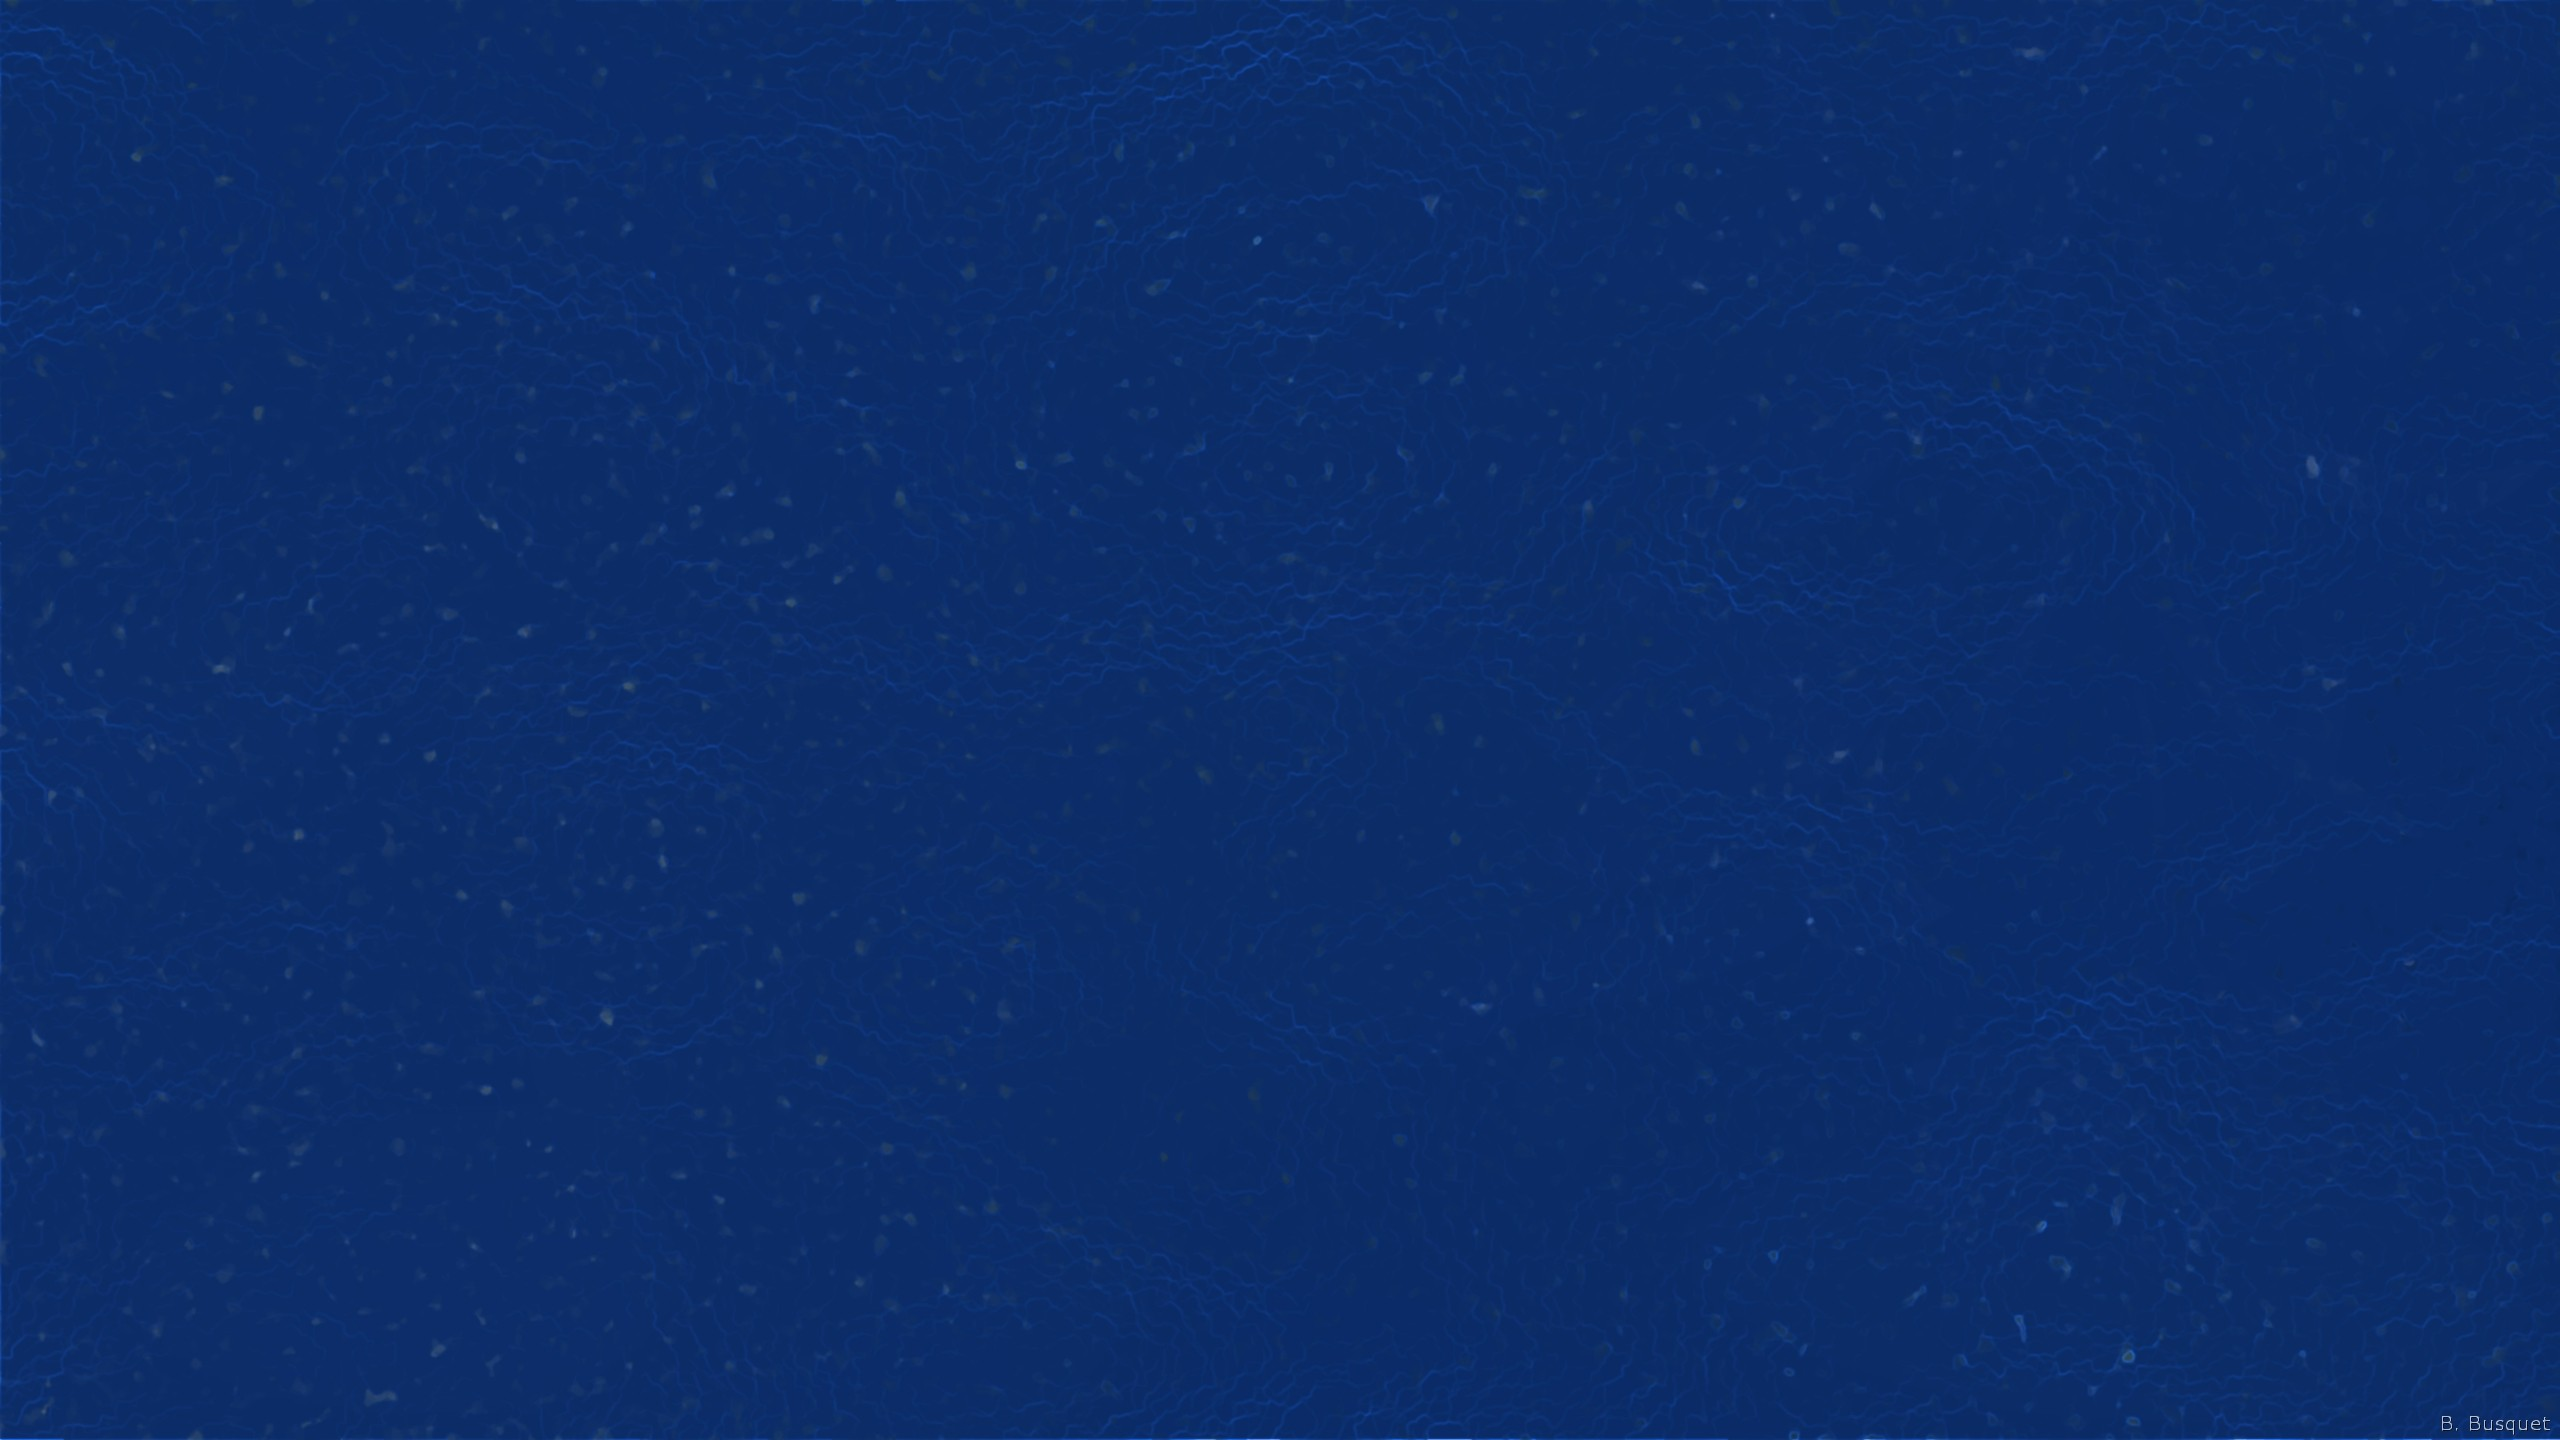 Dark Blue Wallpaper 81 Images